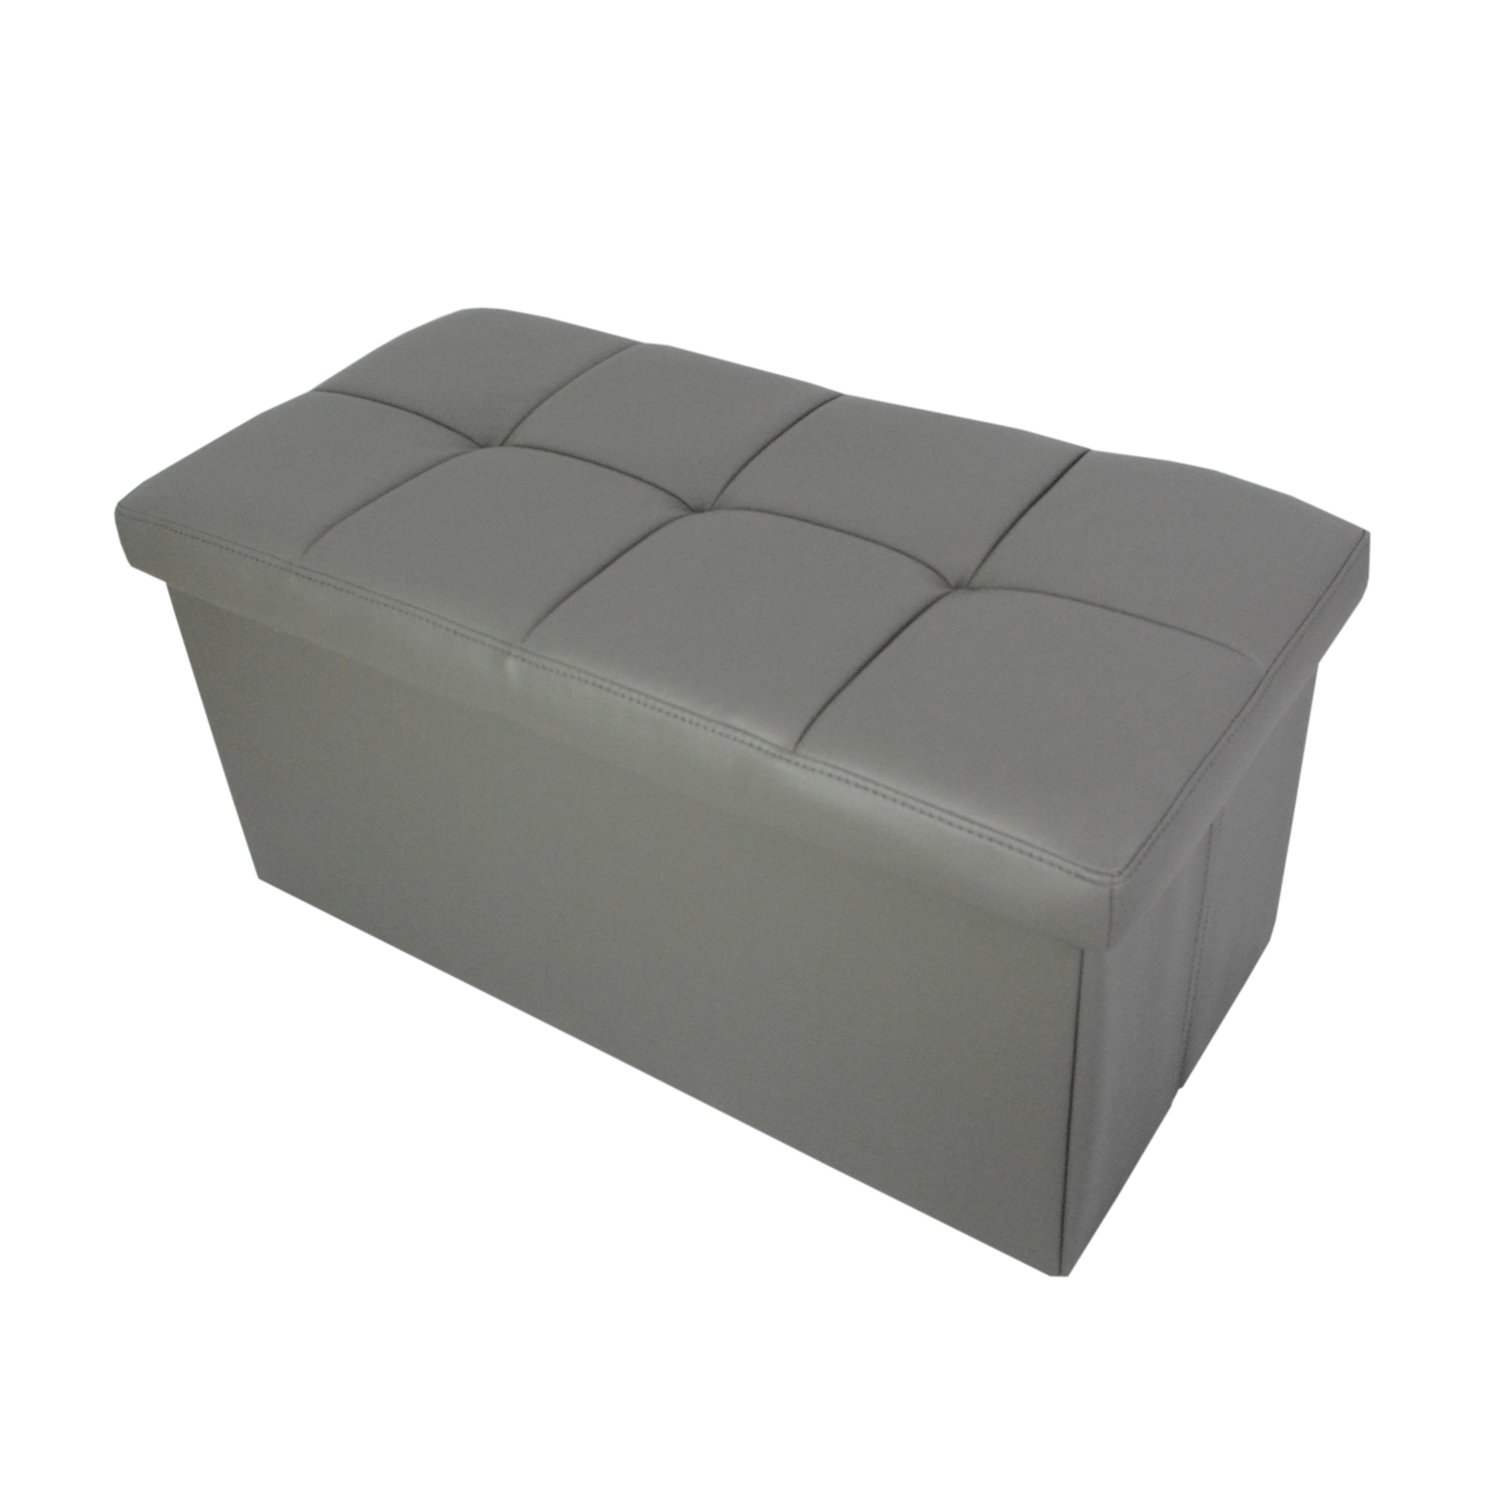 Enjoyable Redde Boo Storage Ottoman Bench Seat Folding Foot Rest Stool In Faux Leather Waterproof 30X15X15 Inches Grey Creativecarmelina Interior Chair Design Creativecarmelinacom